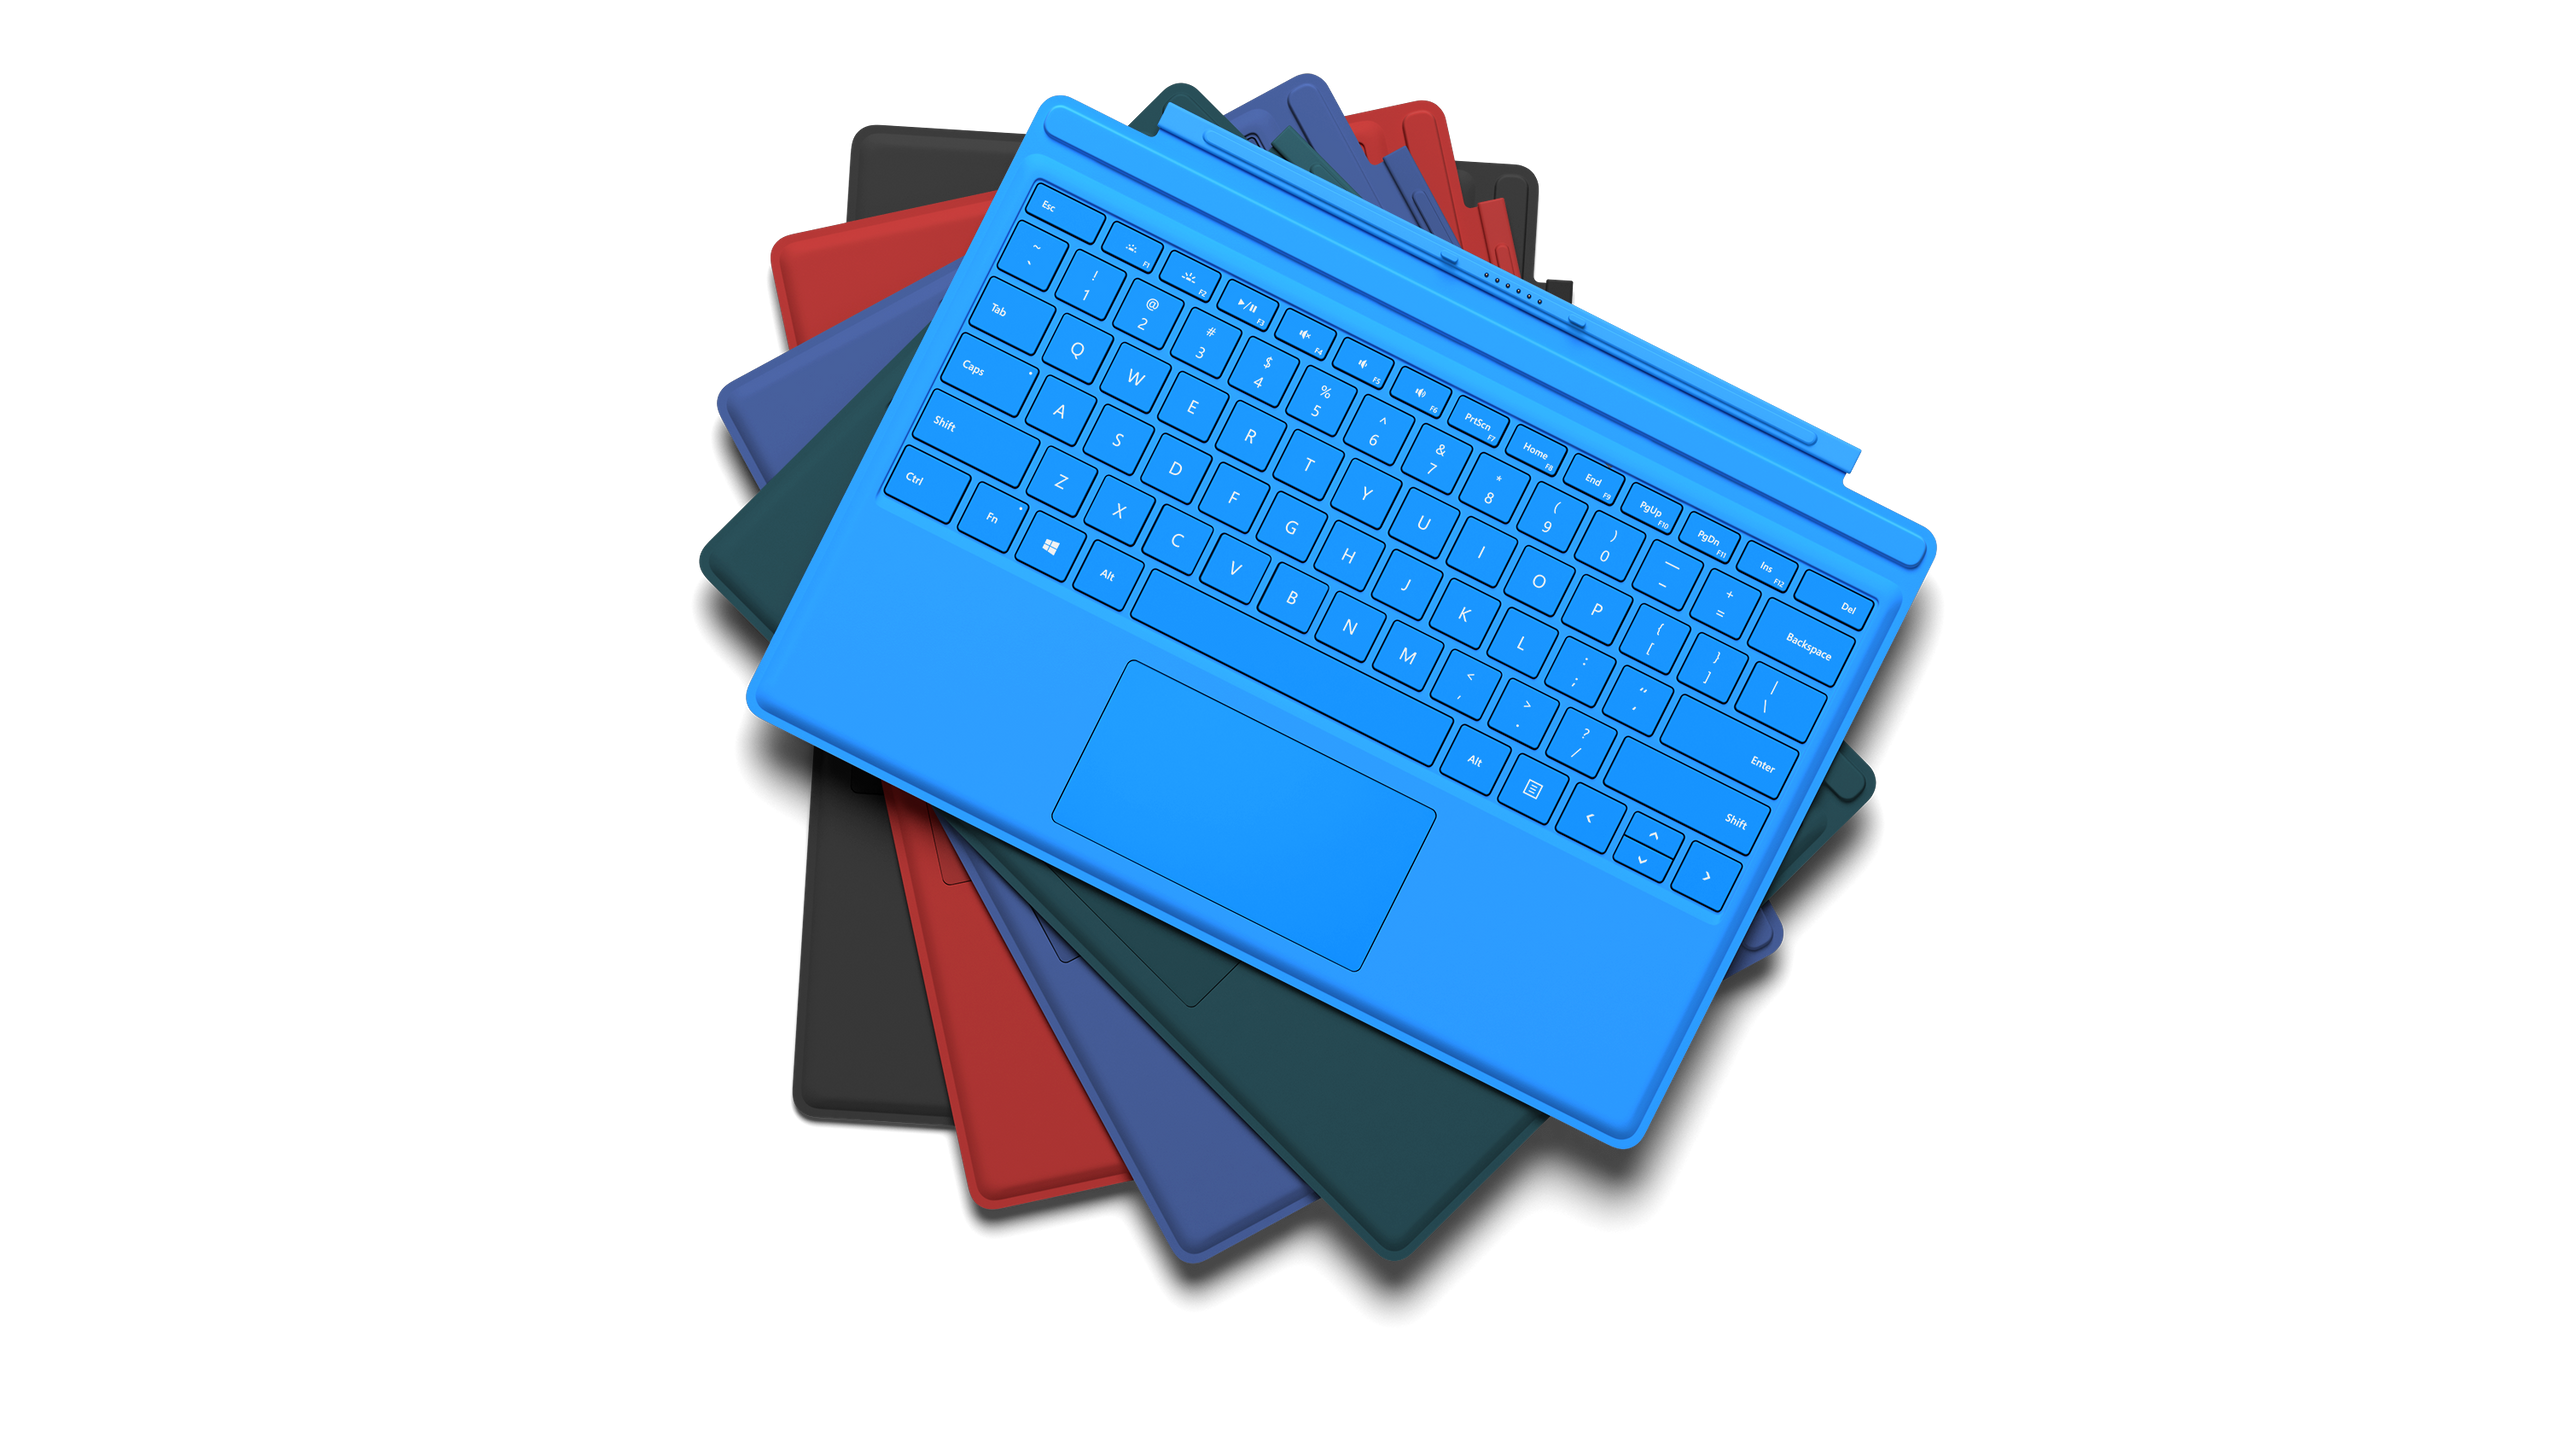 Surface Type Cover Options